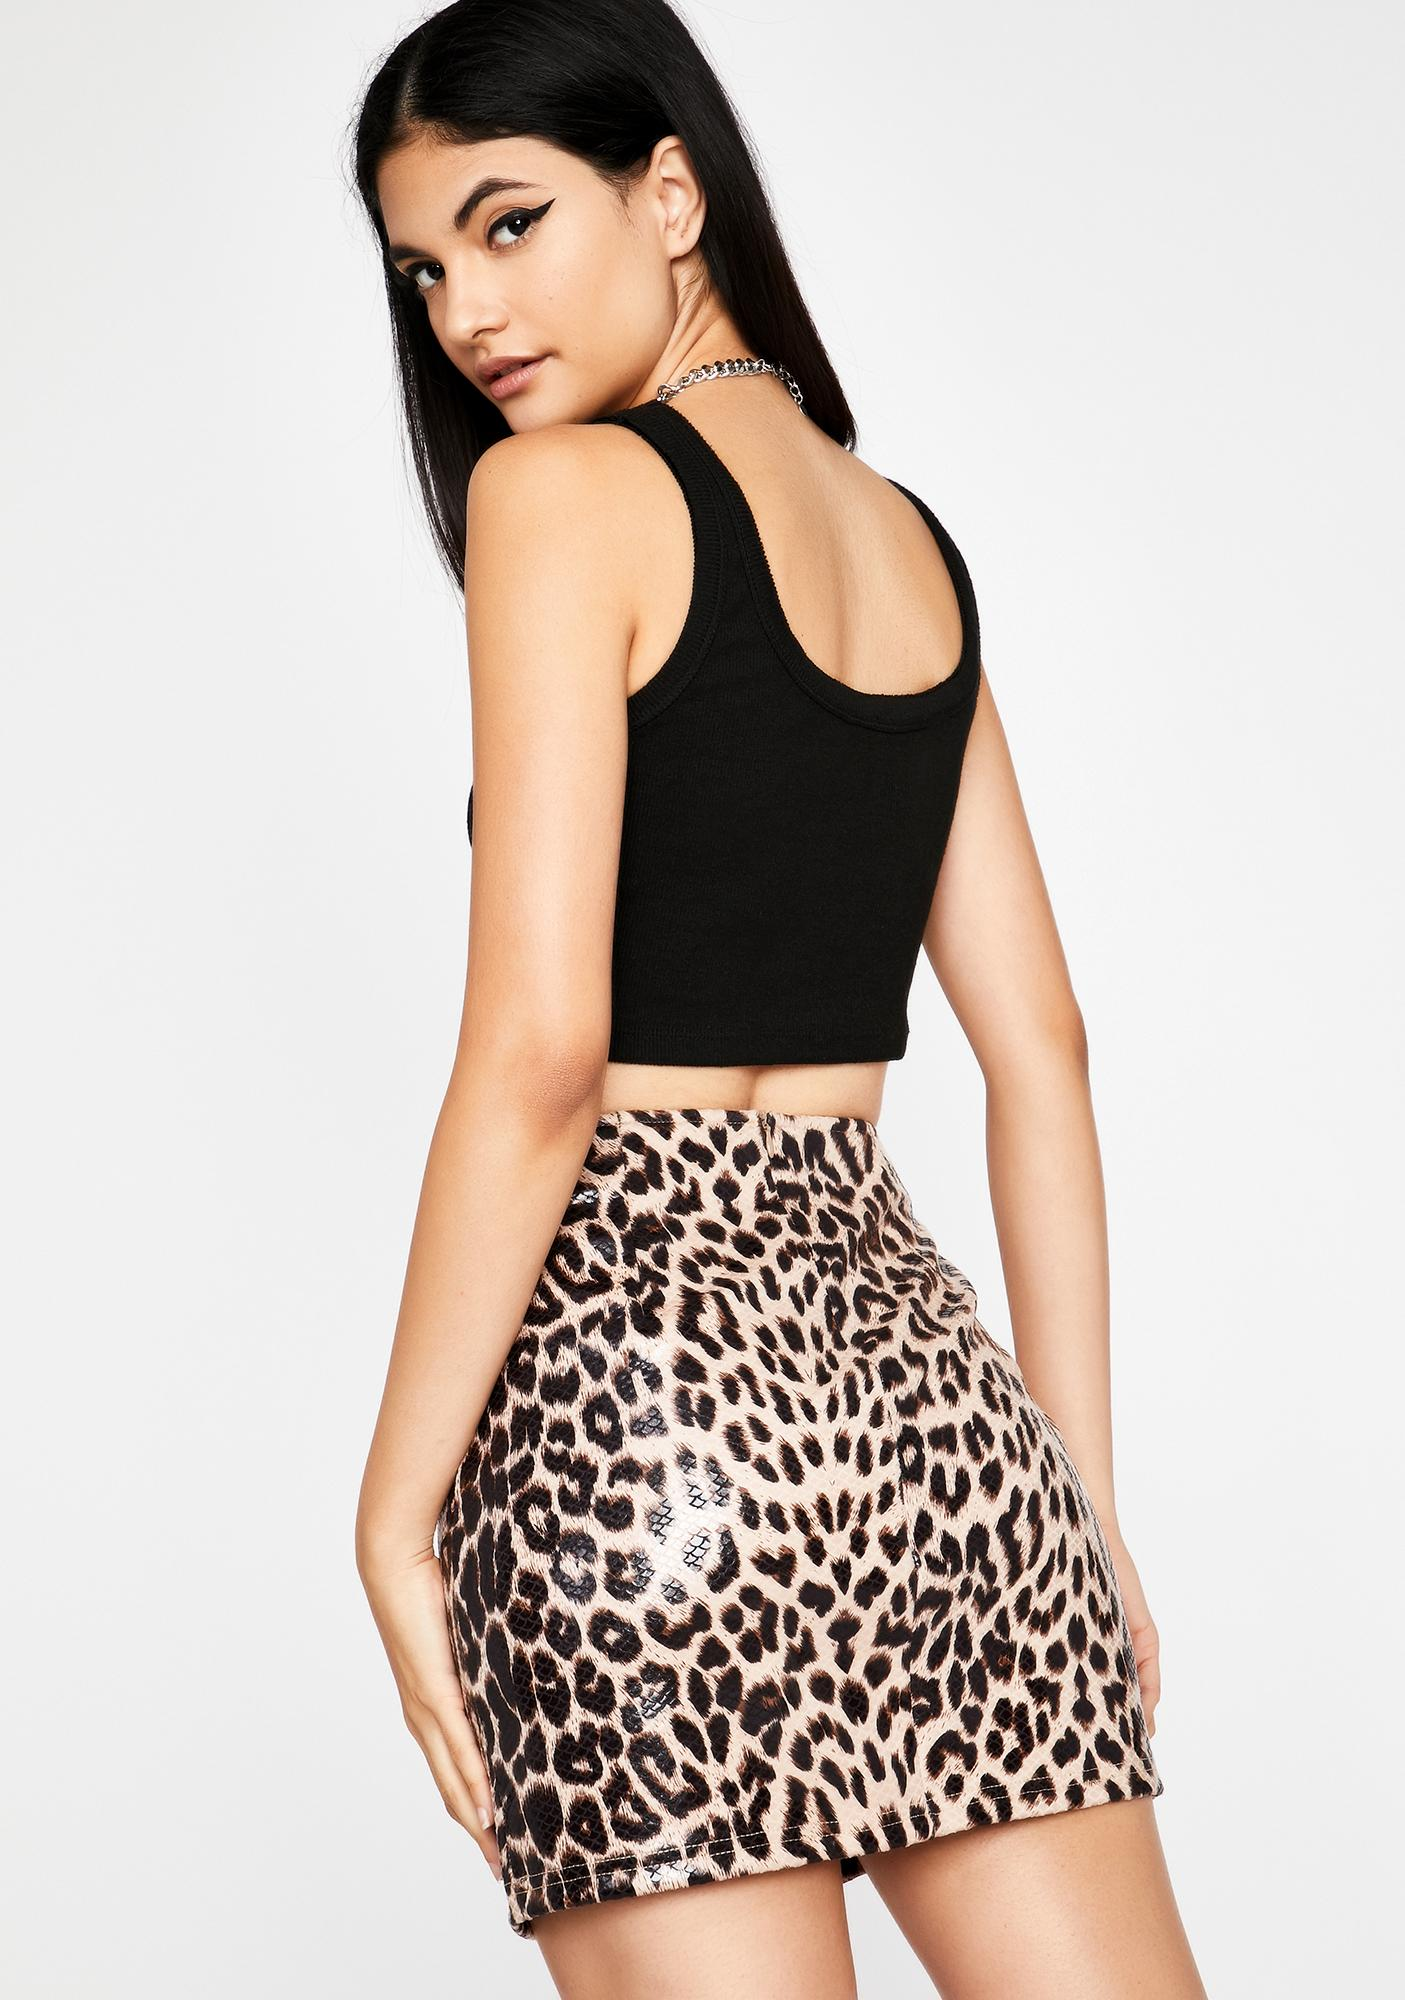 Catty Bish Faux Leather Skirt